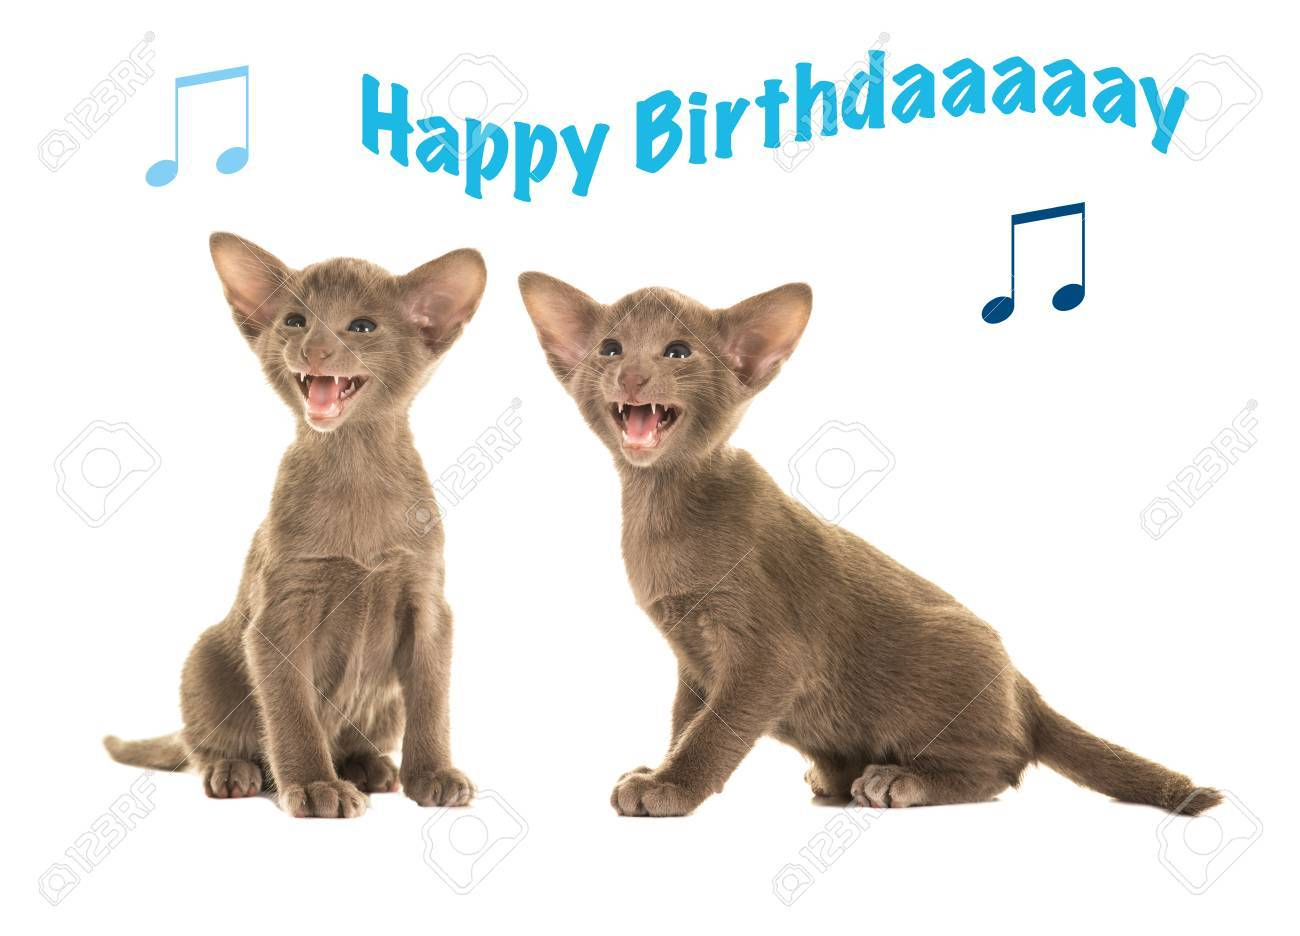 Happy Birthday Card With Two Grey Siamese Sitting Kittens Singing Stock Photo